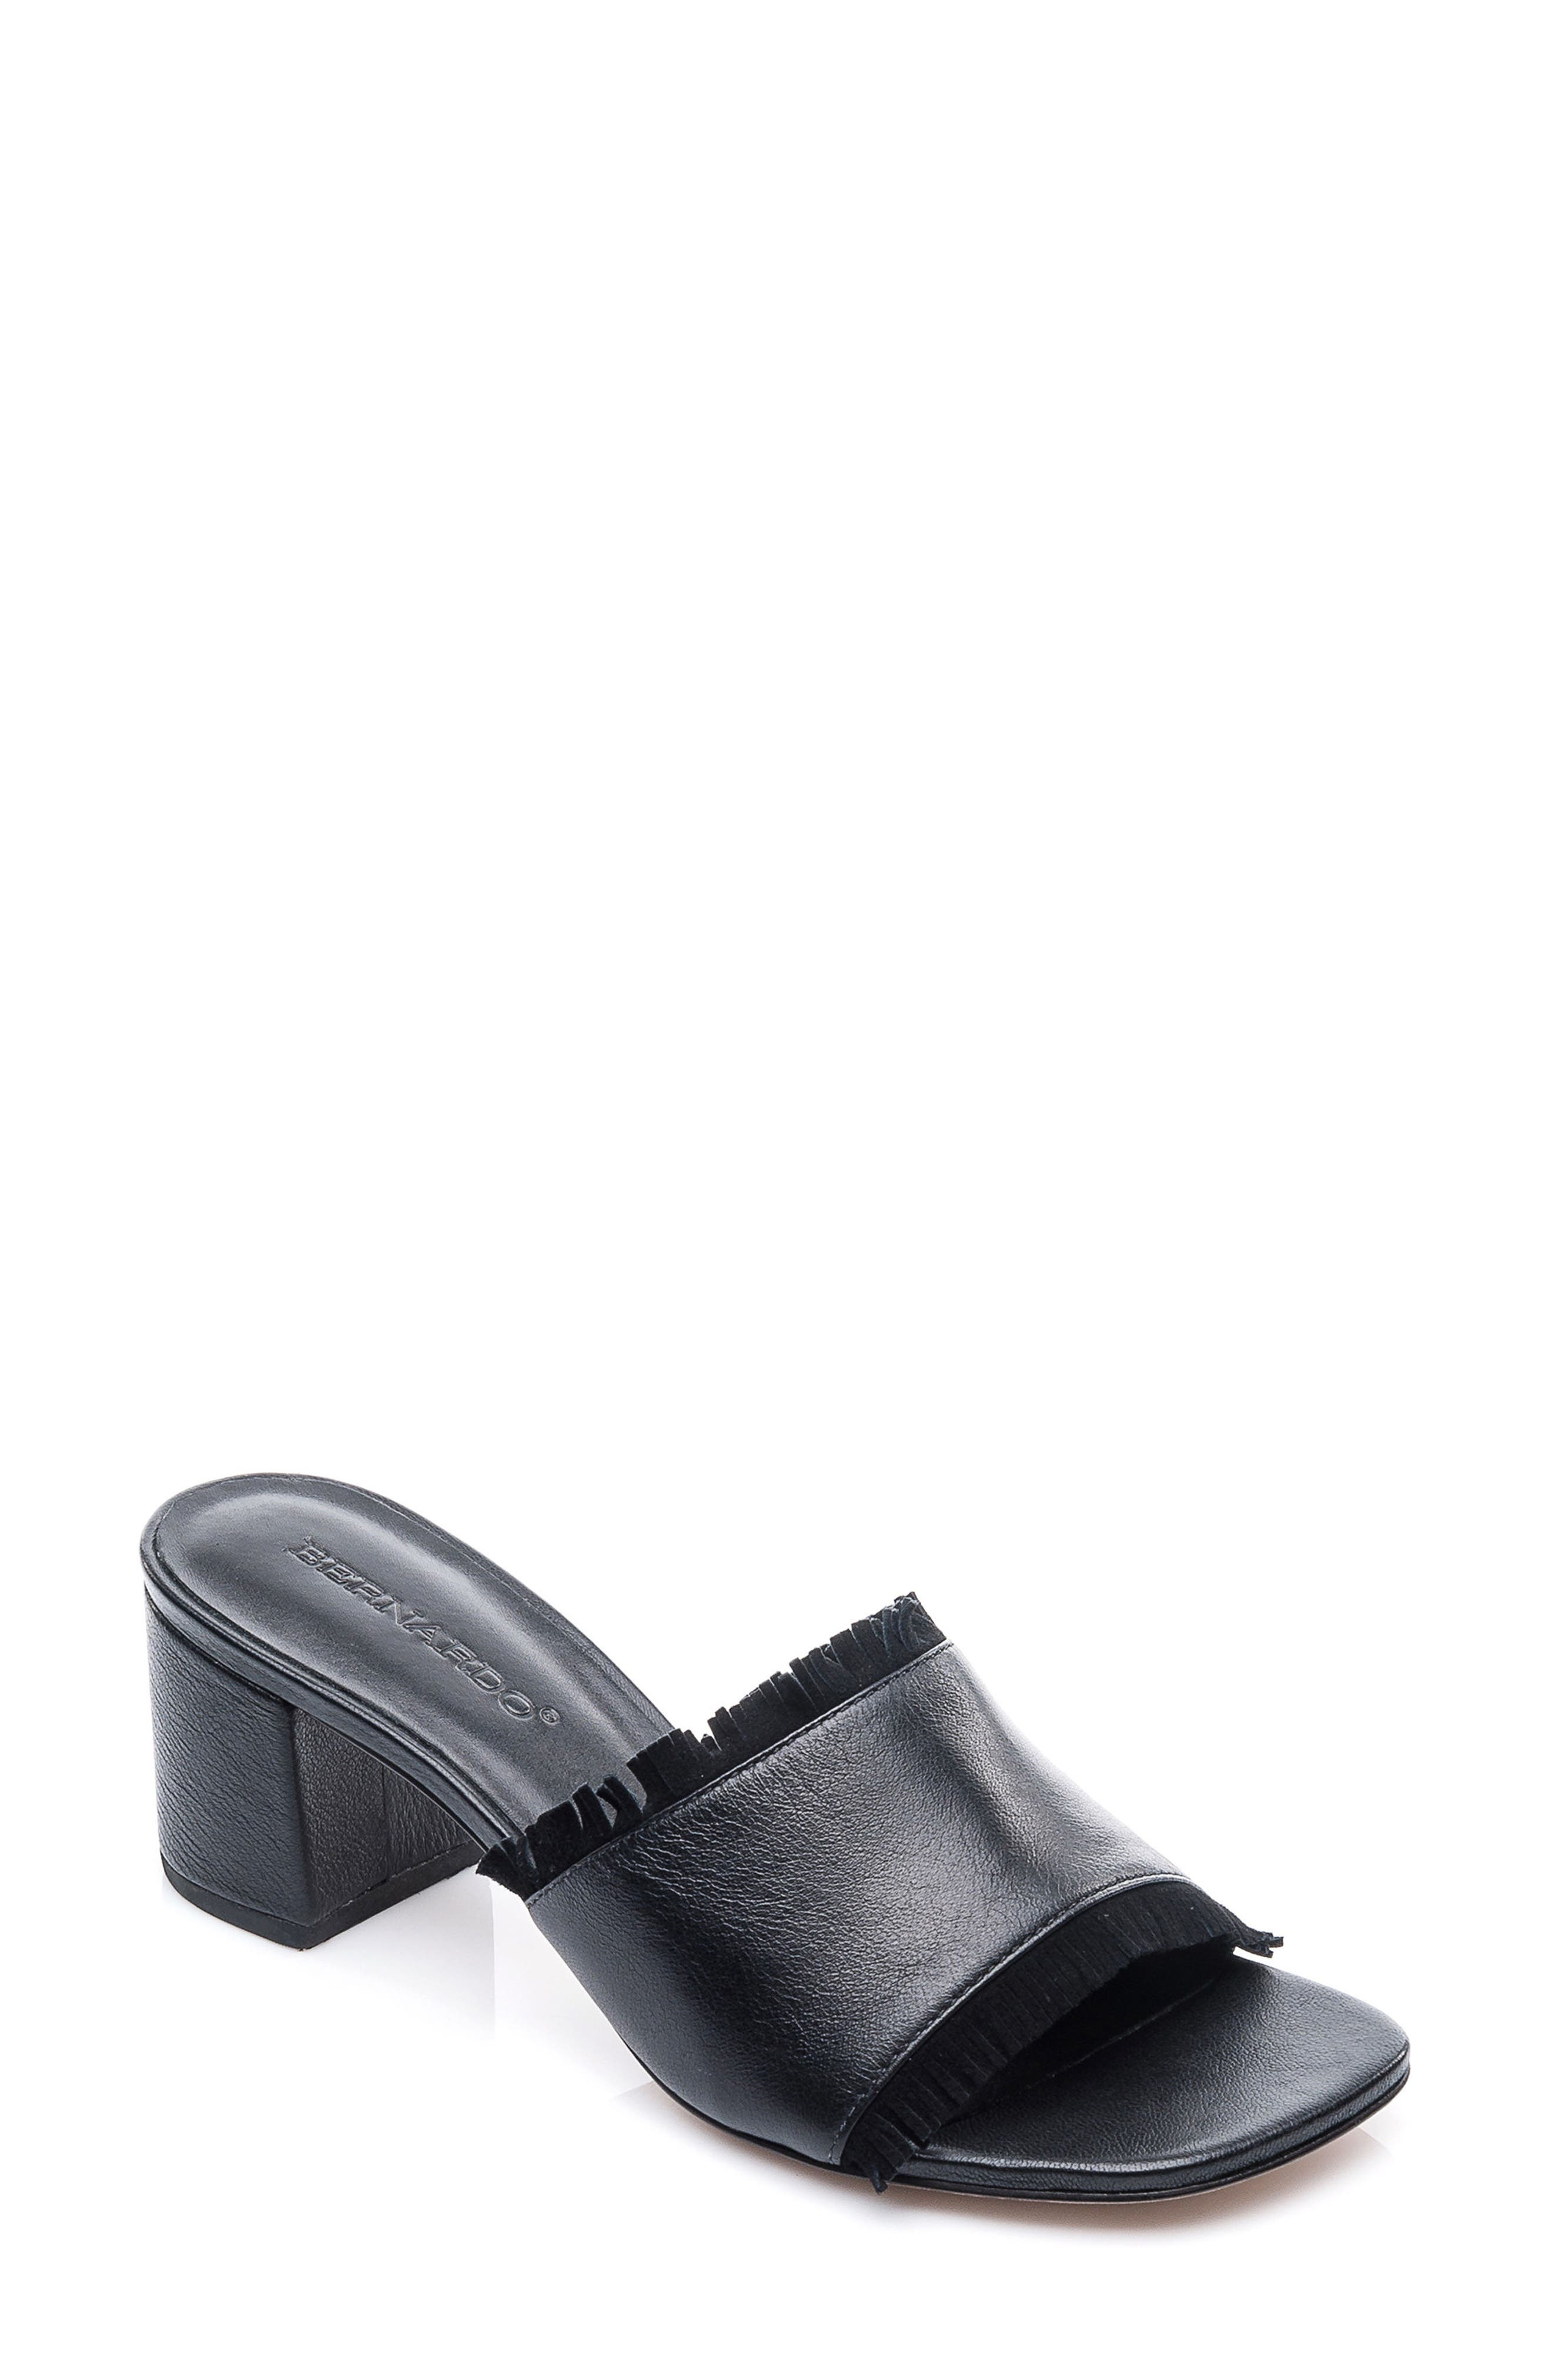 Bernardo Blossom Slide Sandal,                         Main,                         color, 001